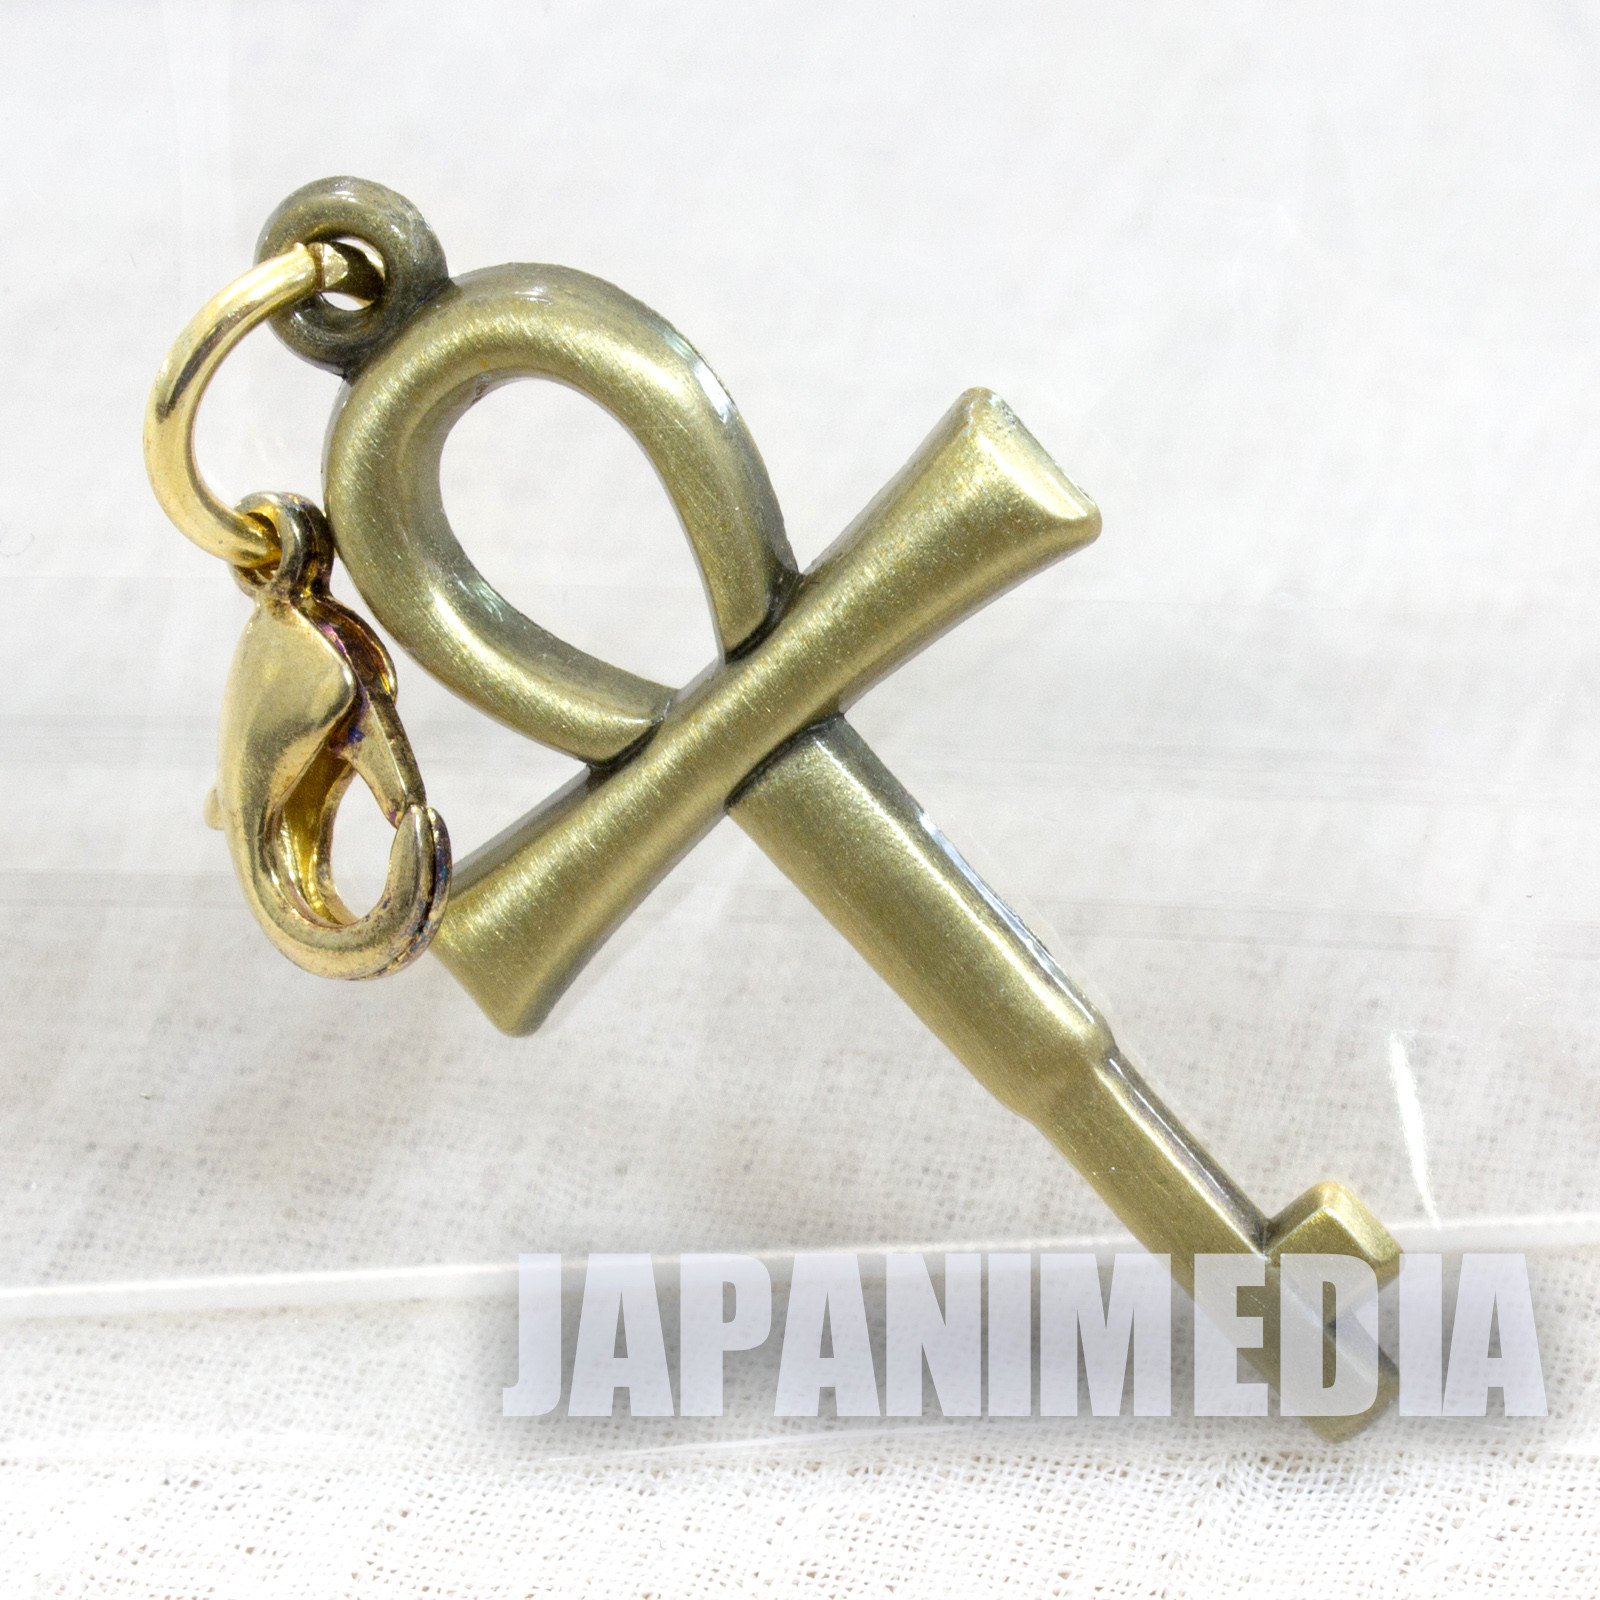 Yu-Gi-Oh! Millenium Key 20th Millenium item Metal charm collection [3] JAPAN ANIME